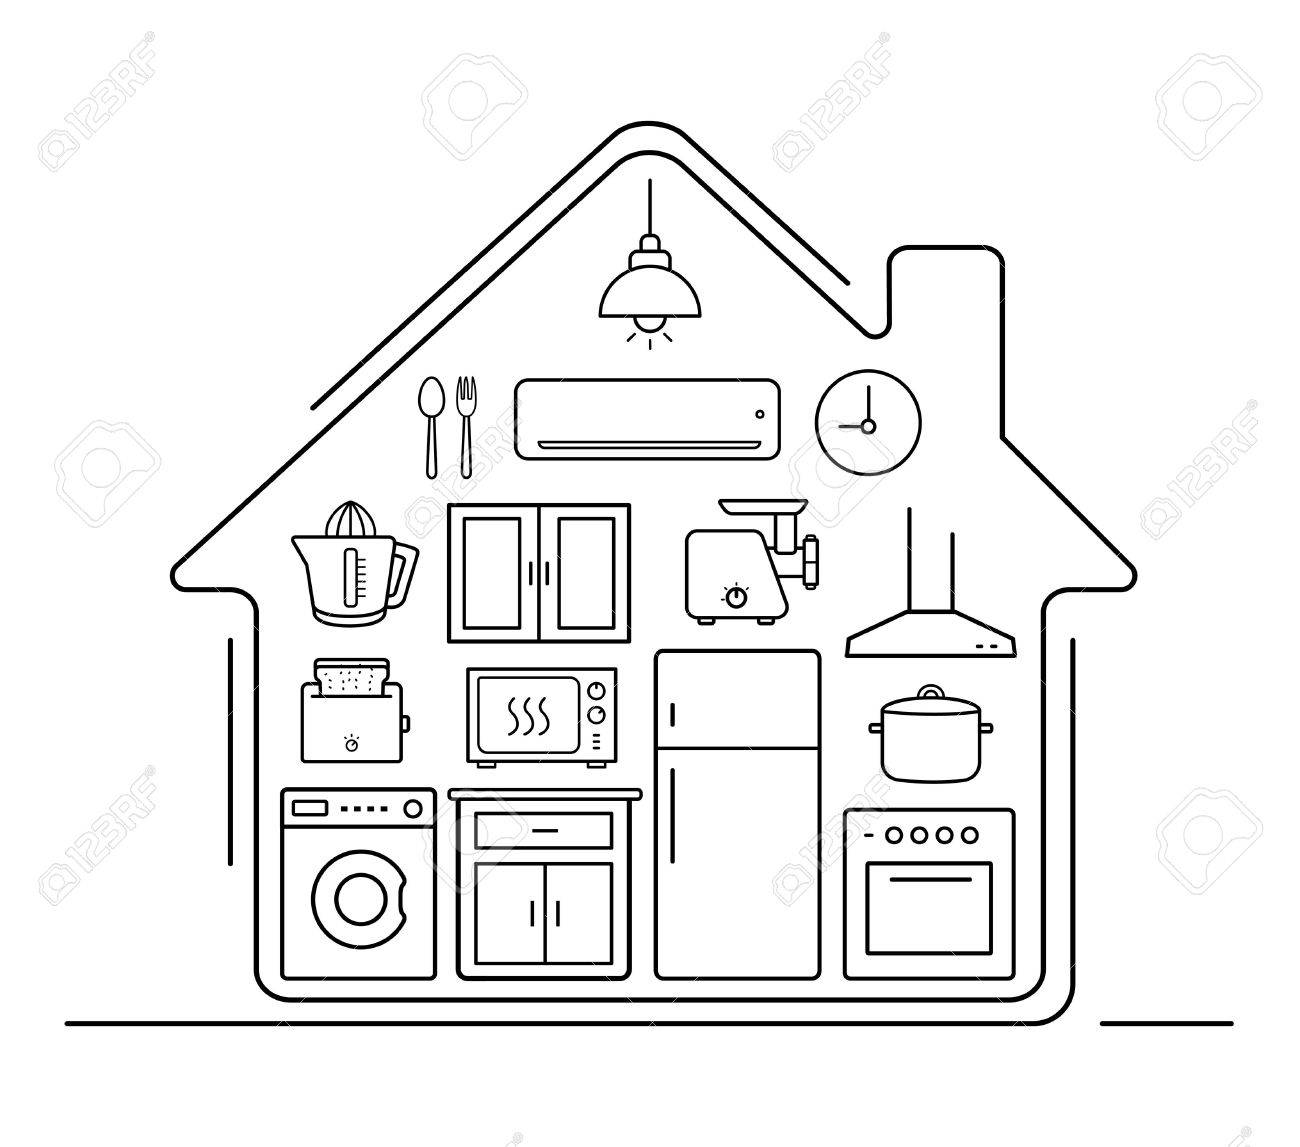 Modern kitchenware thin line icons . Kitchen interior with electronics and furniture illustration. Cooking appliances. Vector house outline drawing concept isolated on white - 45710234